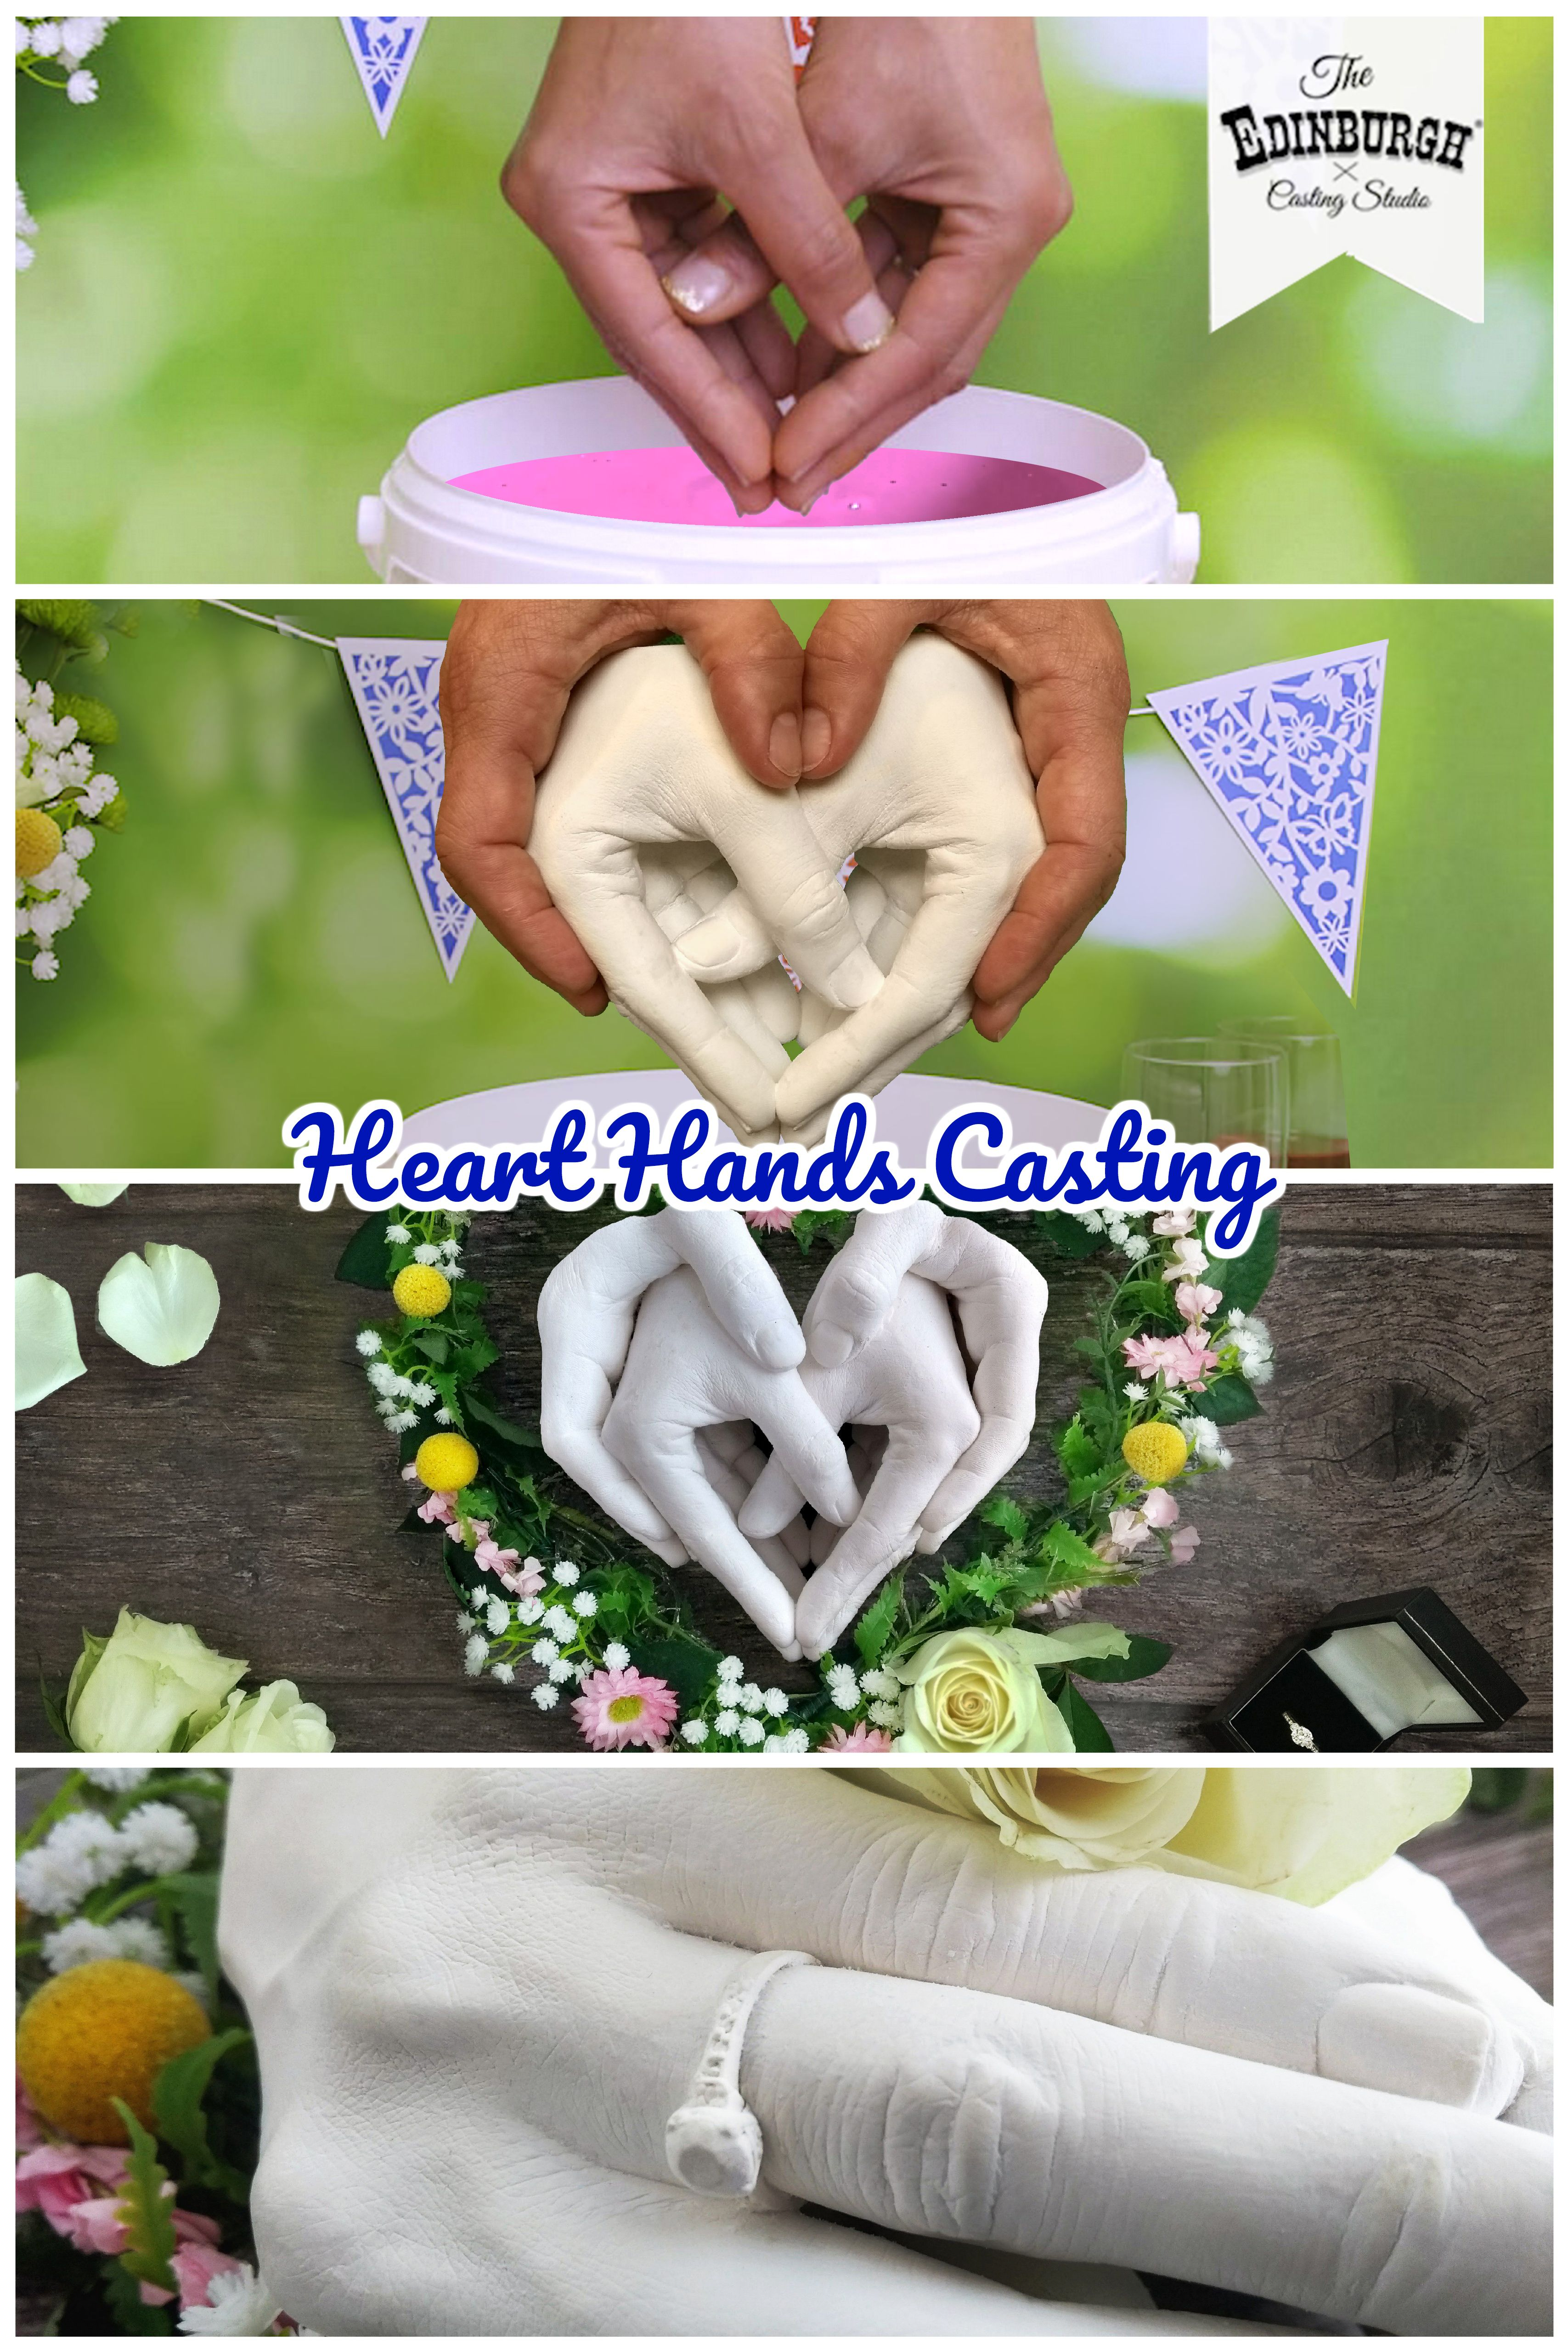 Make This Heart Hands Casting Using Our Family Refill Casting Kit Two Sets Of Hands Together Forever Wrapped In Love Casting Kit Diy Plaster Hand Molding